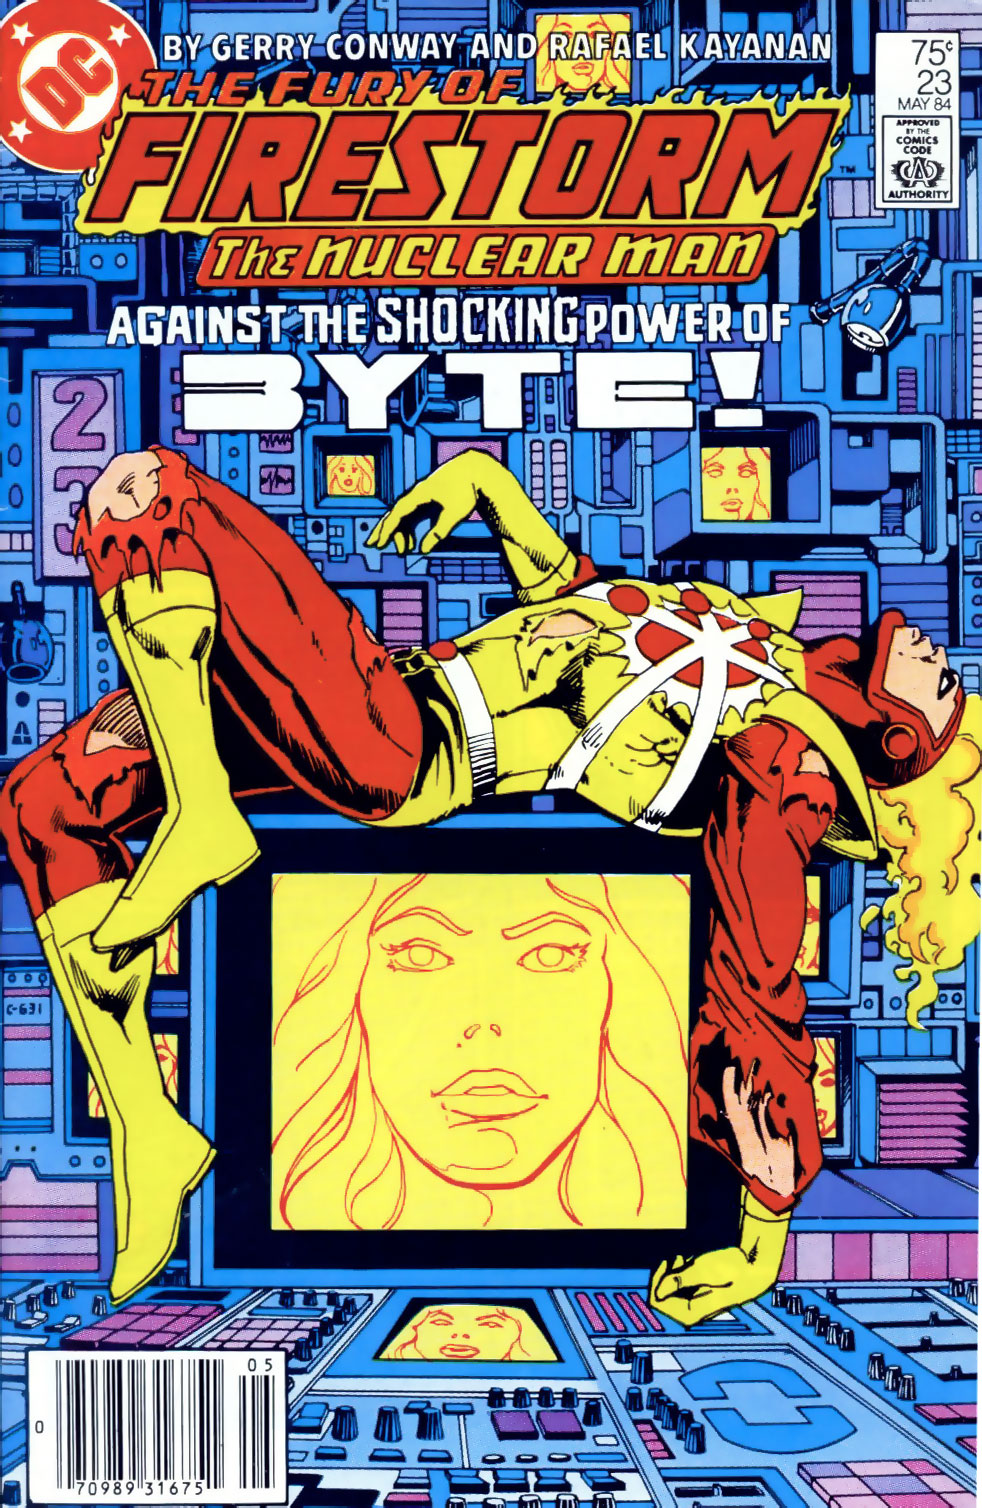 Fury of Firestorm #23 cover by Rafael Kayanan and Dick Giordano